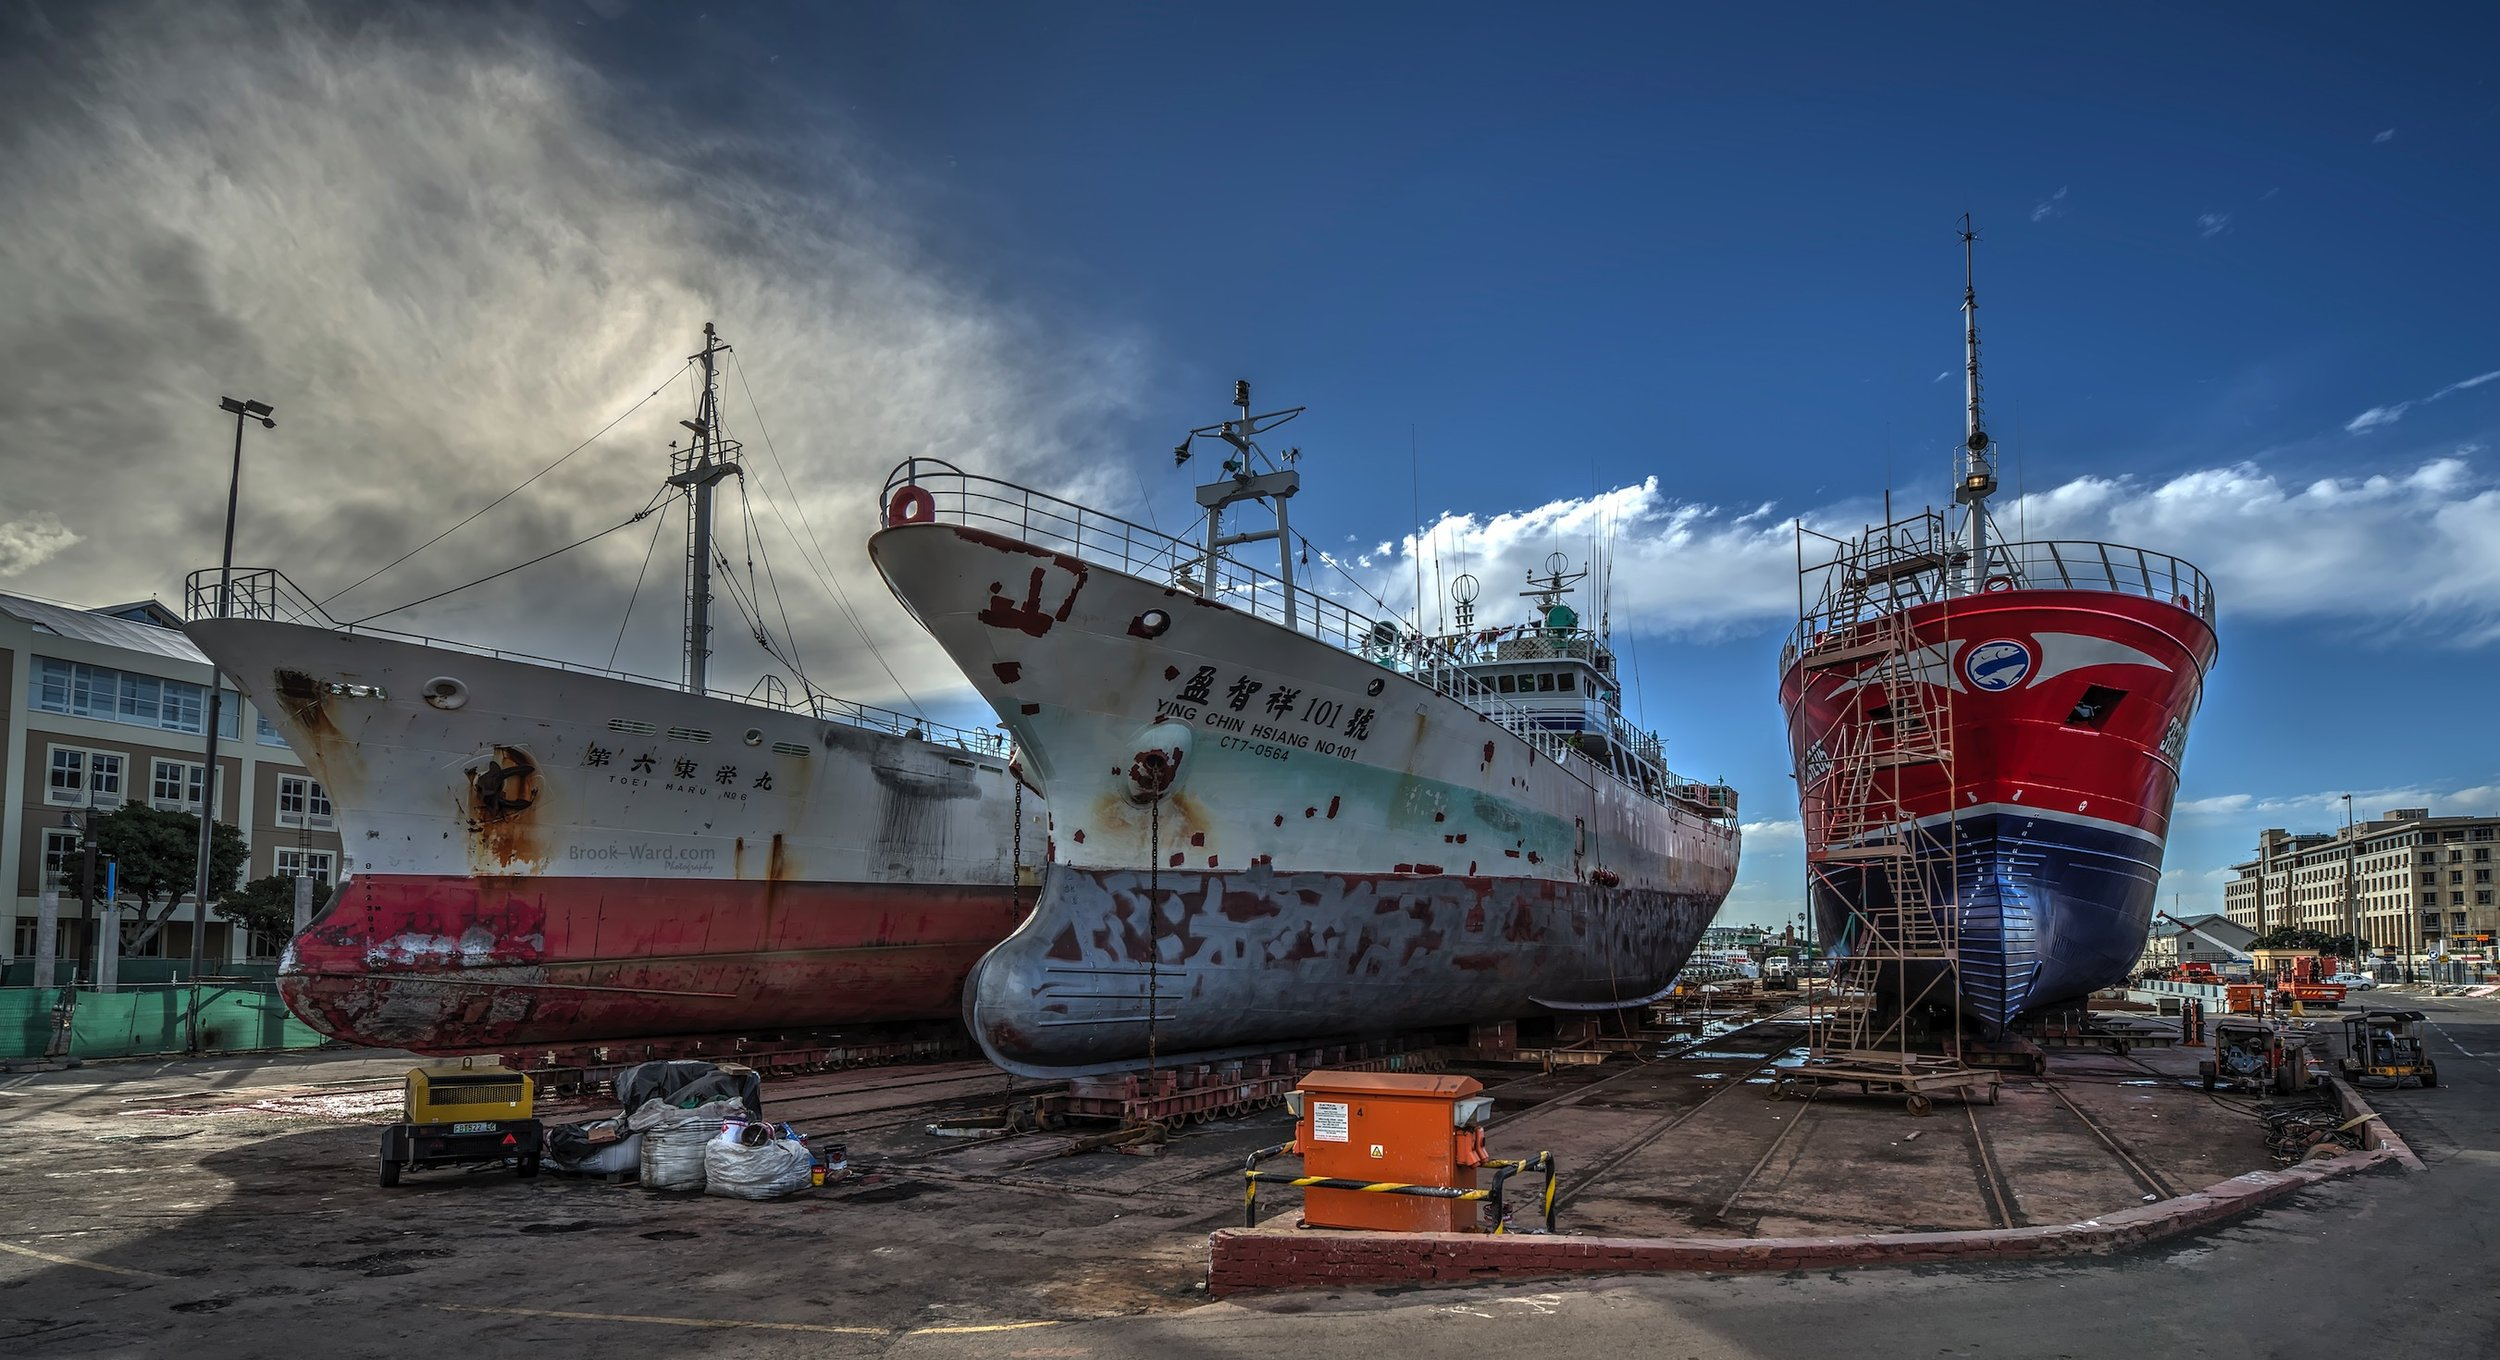 Dry Dock - Cape Town